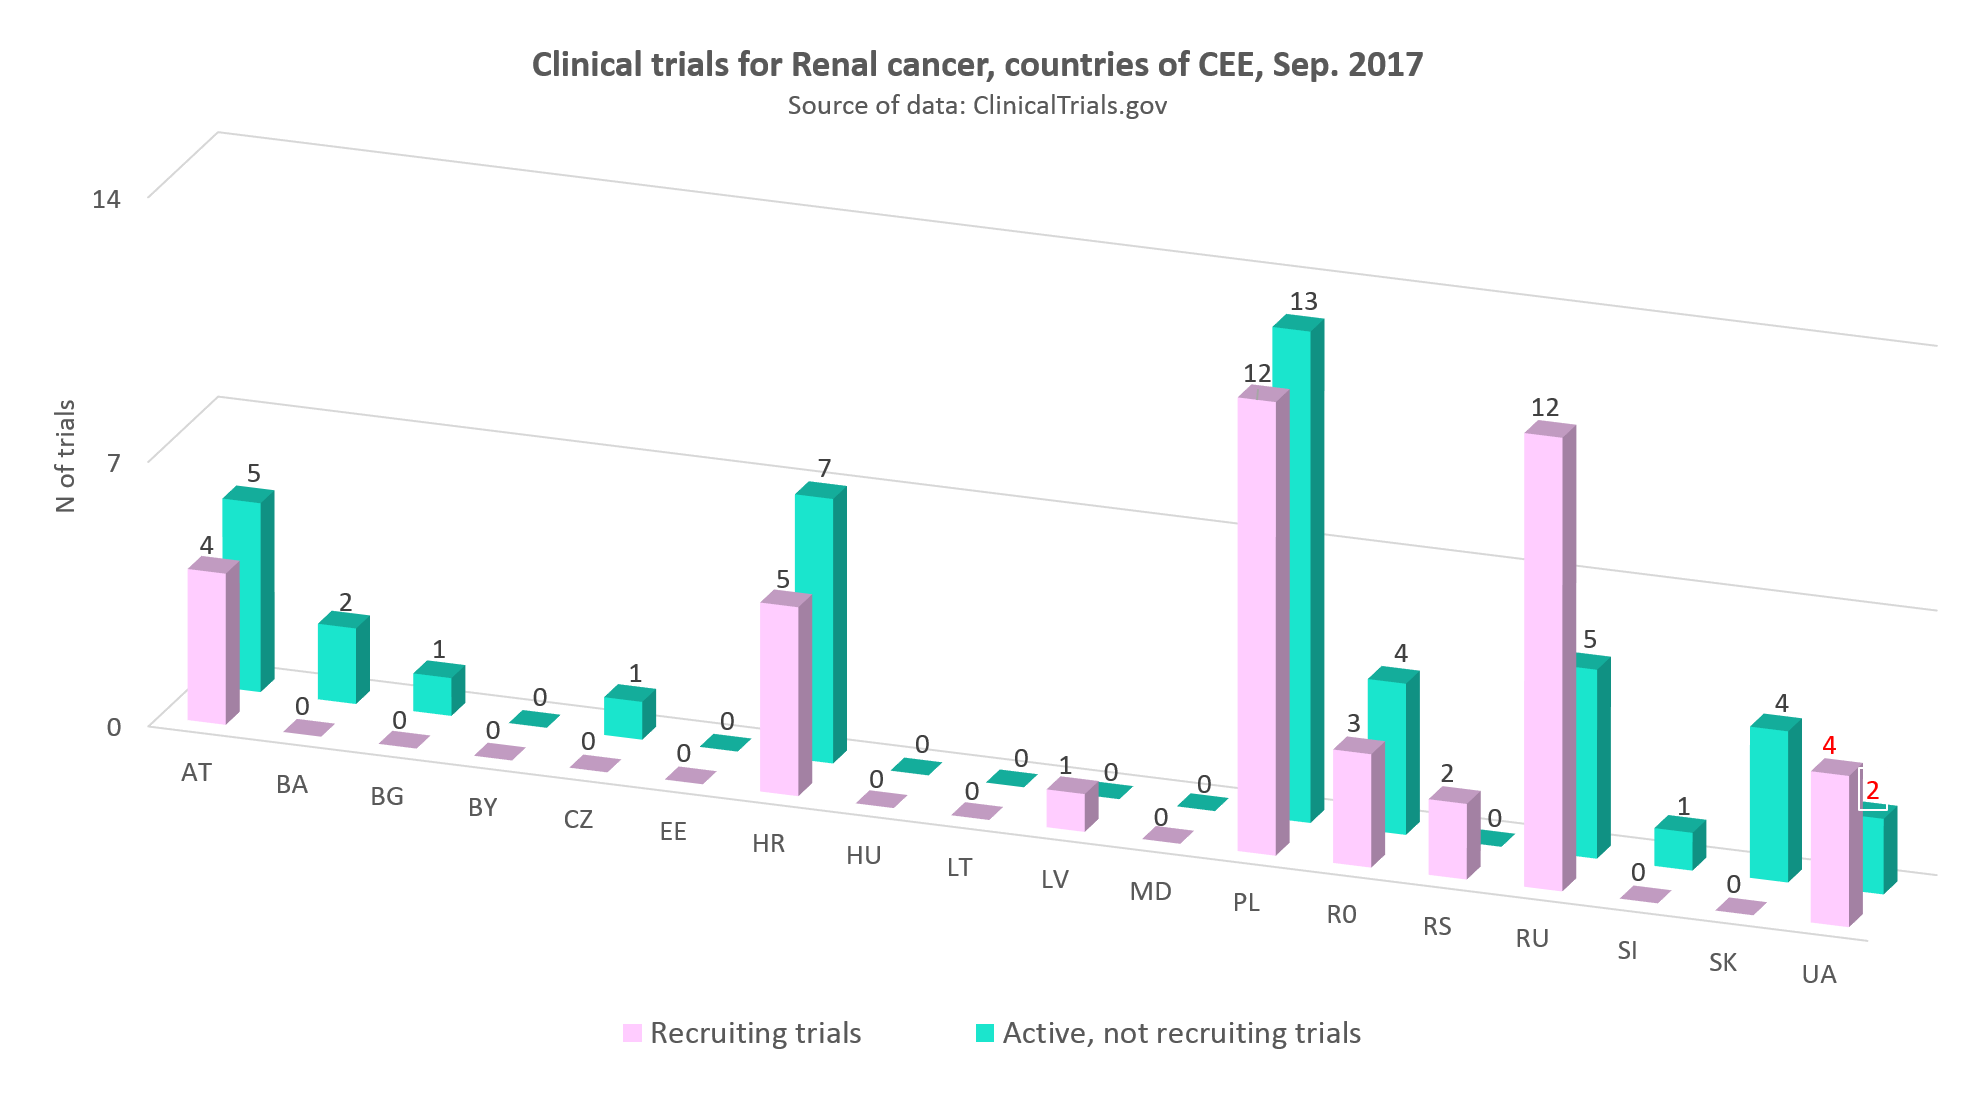 Clinical trials for renal cancer in the countries of CEE, September 2017